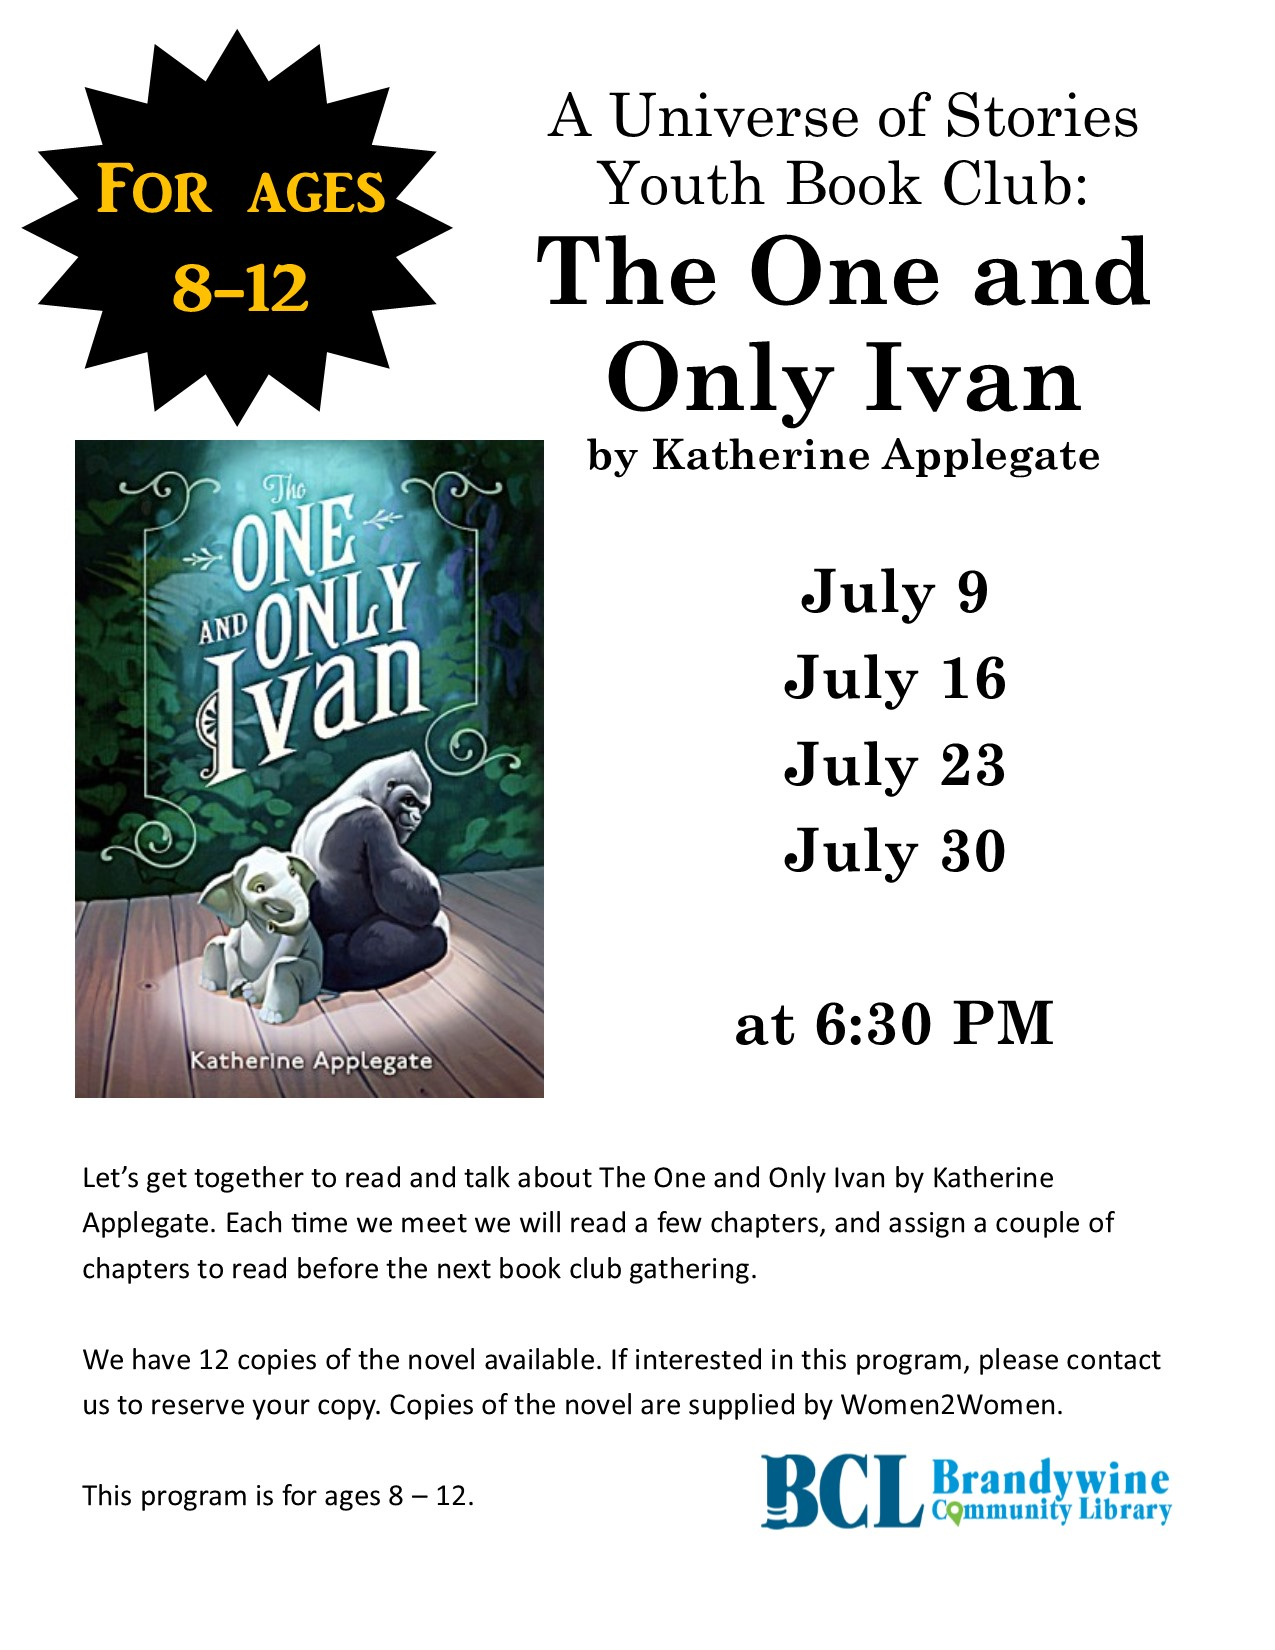 Youth Book Club: The One and Only Ivan